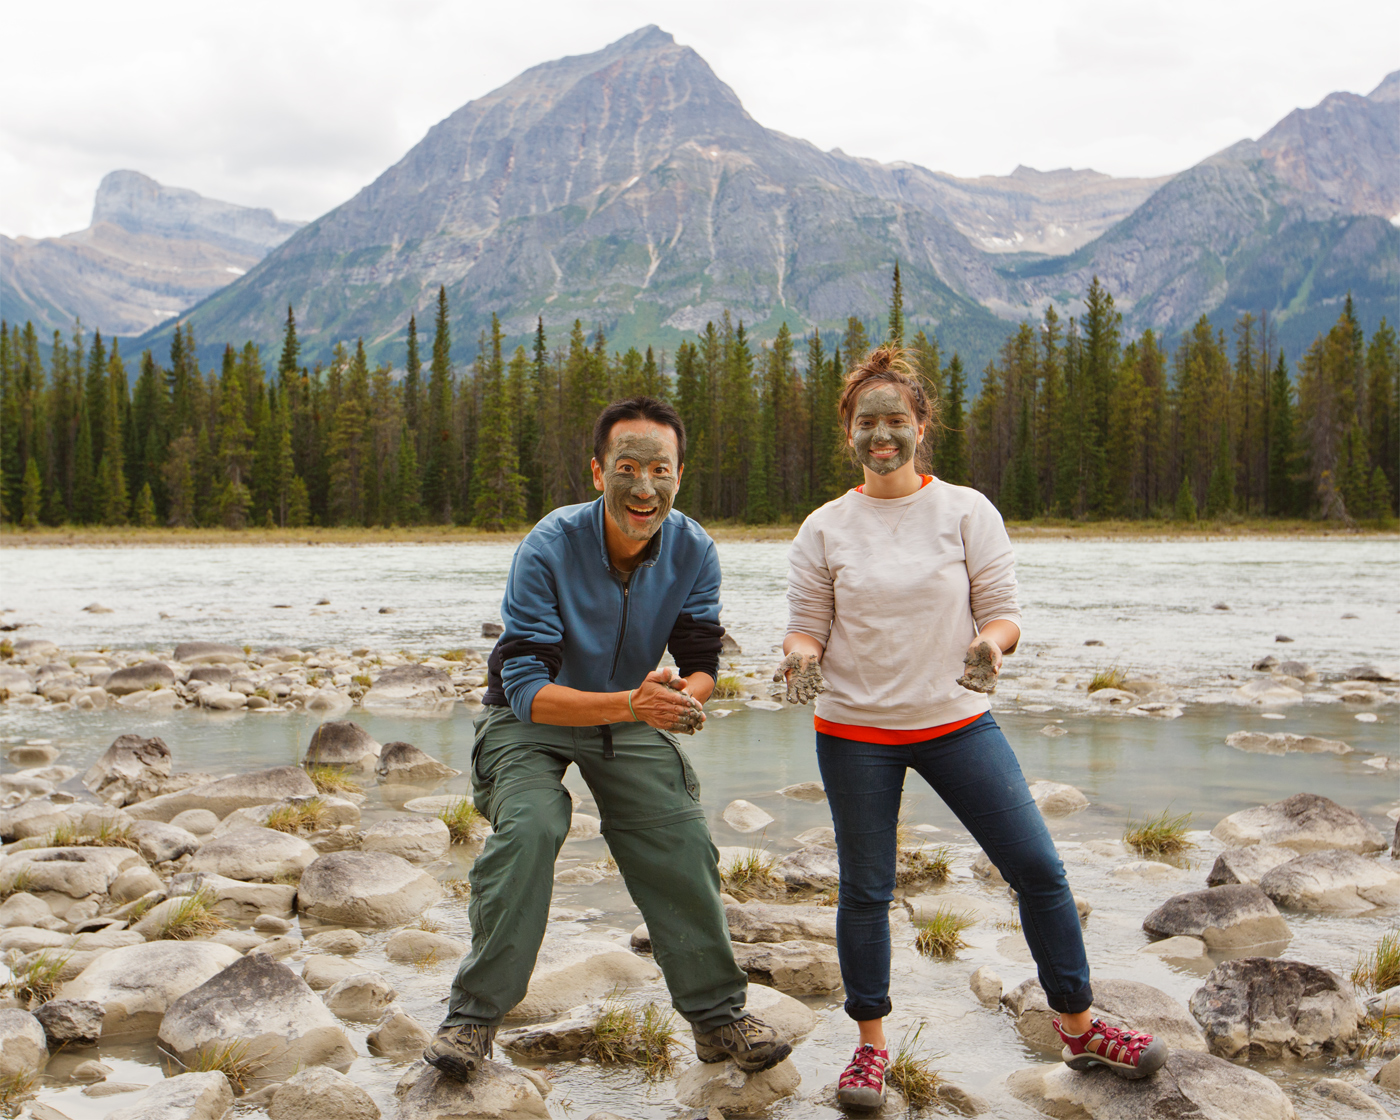 Ironically, the only time both of us appeared in a photo together, we decided to cover ourselves with mud! This mud was quite the exfoliator actually, and Lauren had the idea to start a facial masque business in Jasper. (Paul Nguyen)